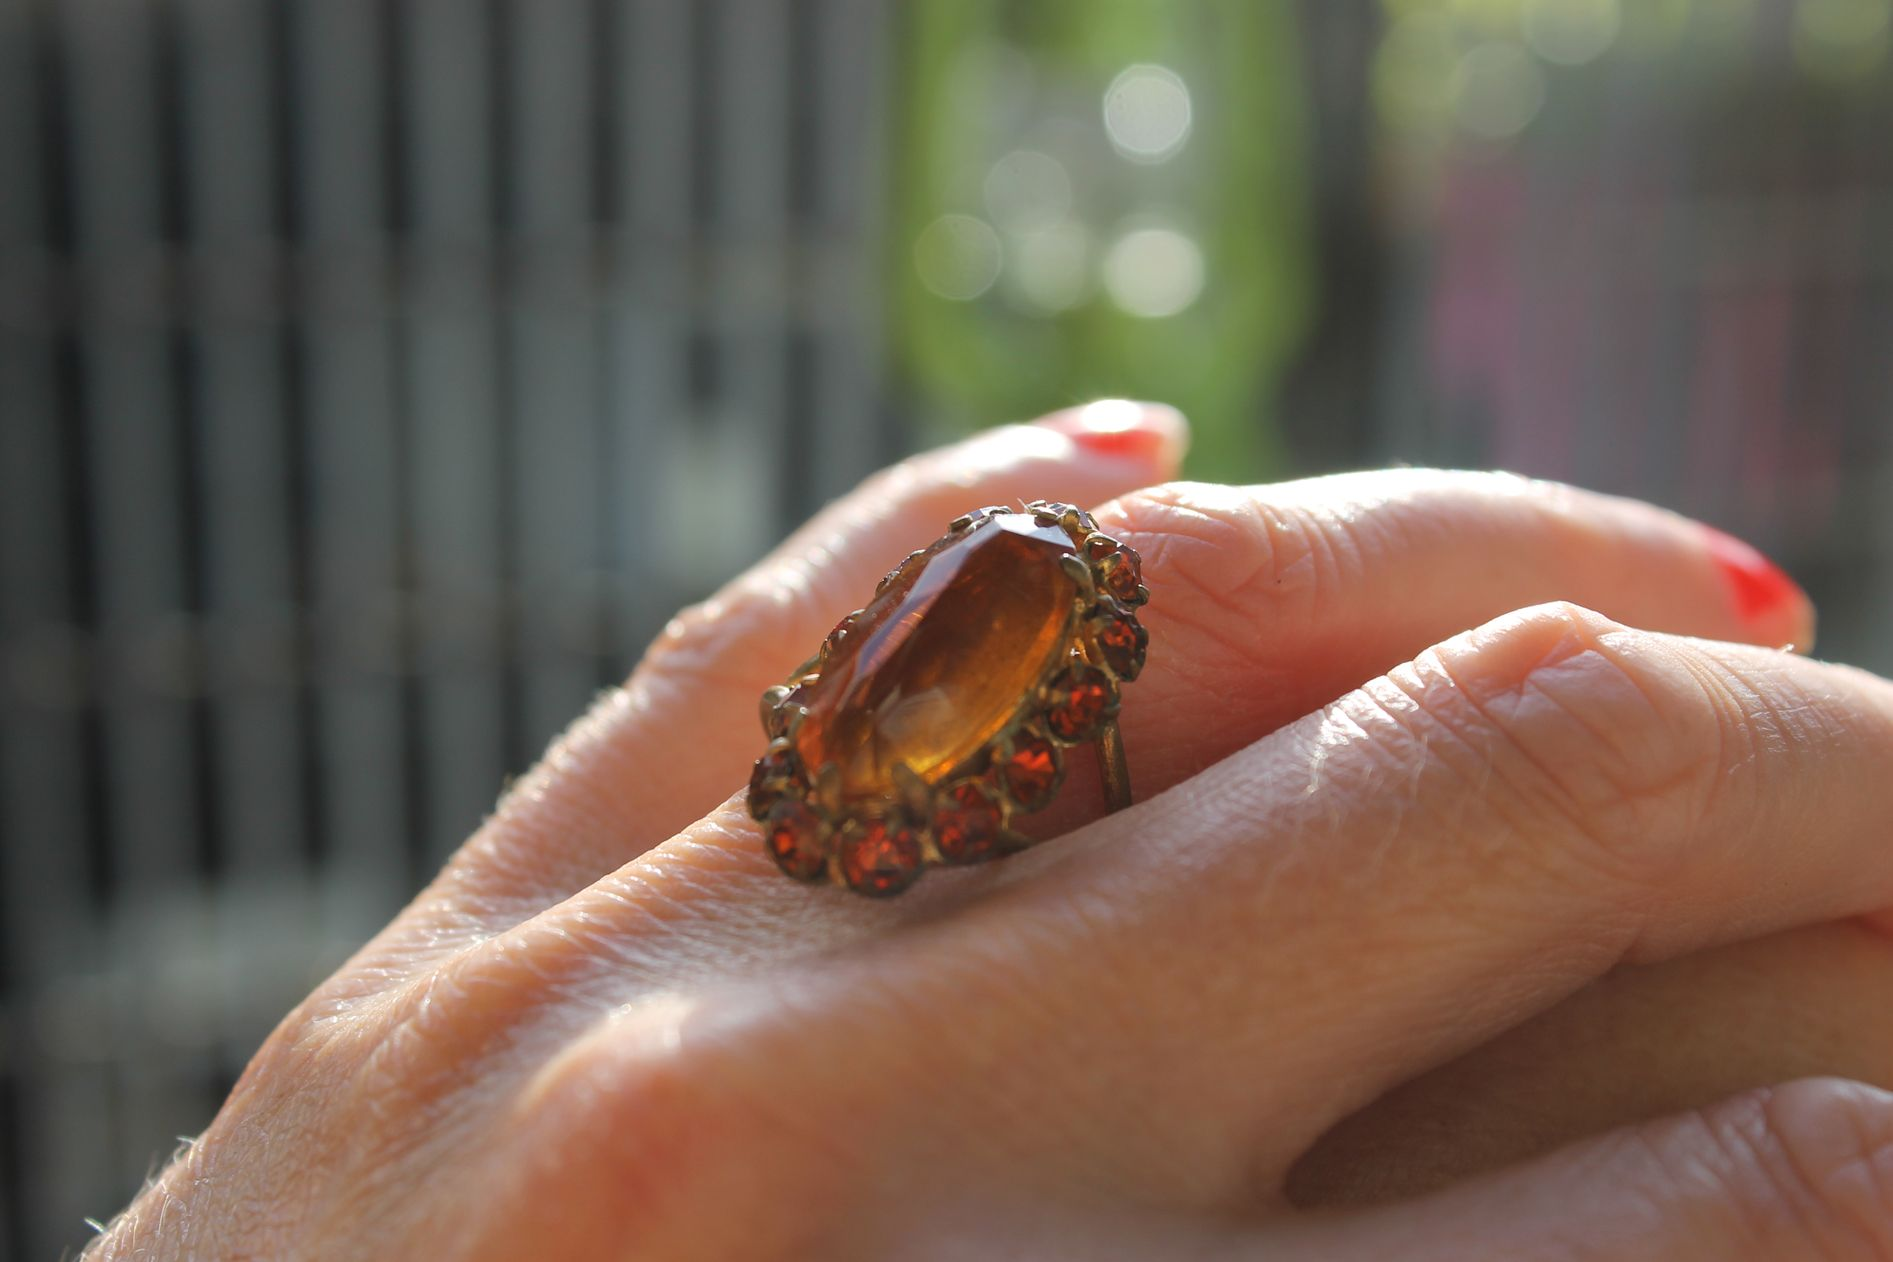 https://marketplace.asos.com/listing/rings/vintage-large-amber-ring/509896